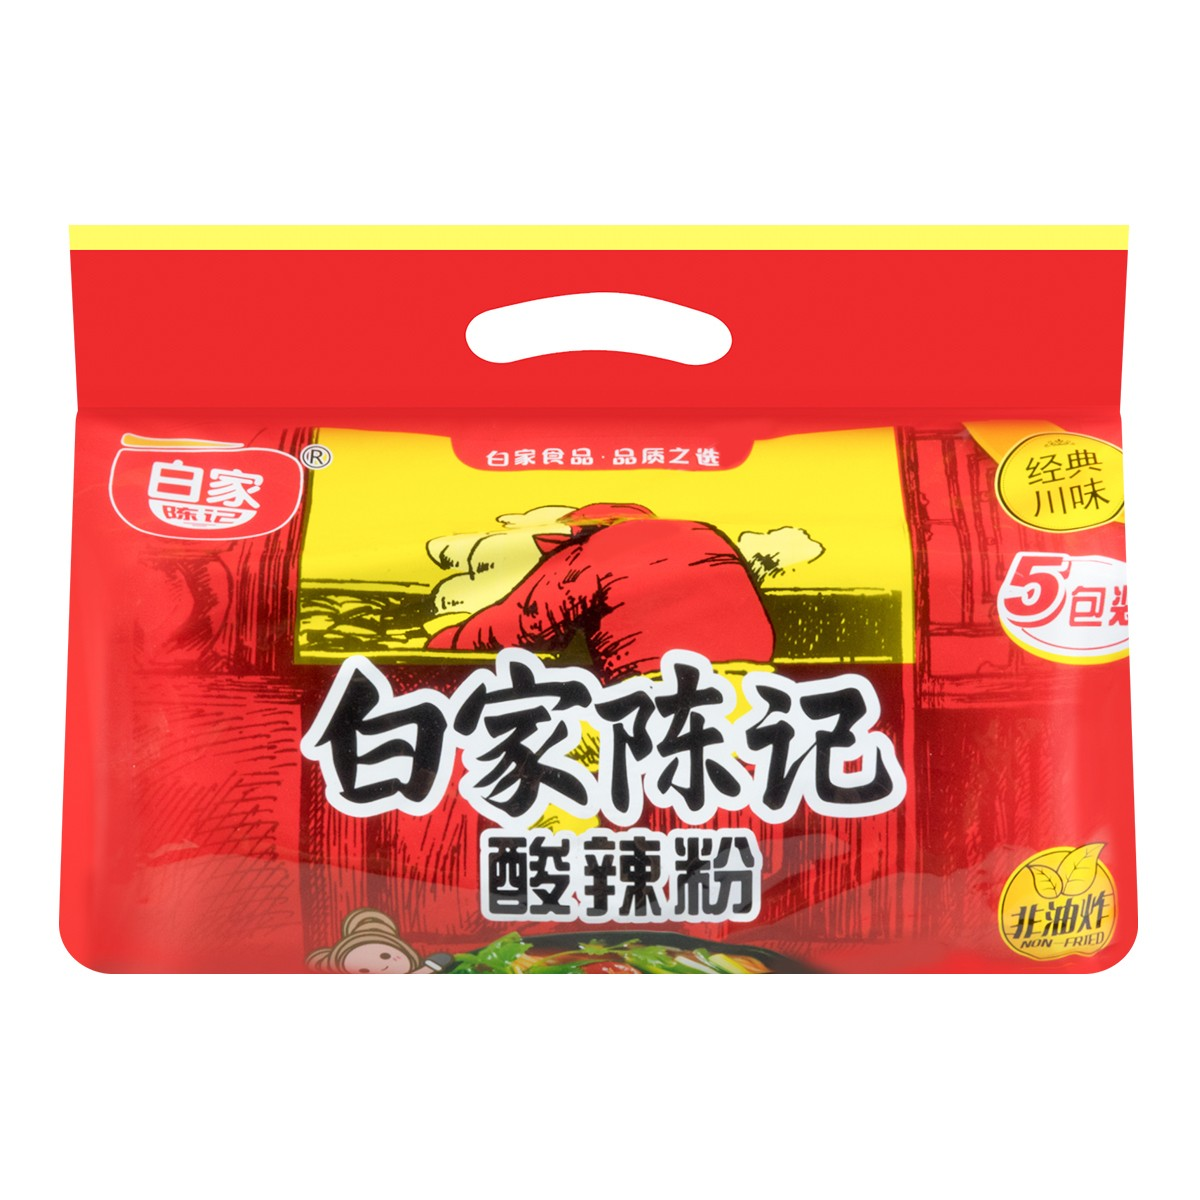 Yamibuy.com:Customer reviews:BAIJIA Instant Vermicelli 5packs -Spicy and Sour Flavor 525g